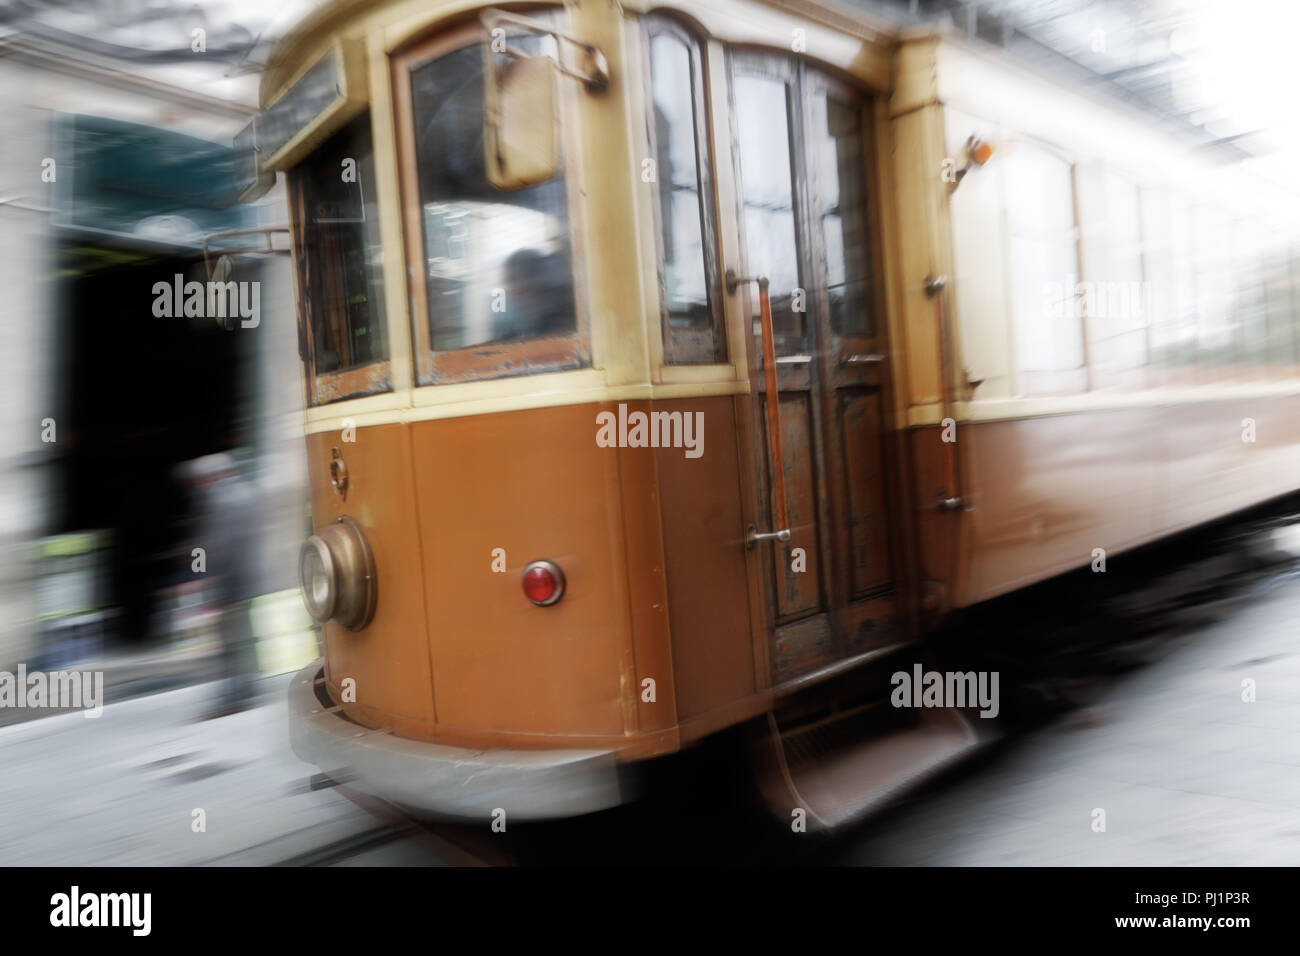 Old city blurred background with vintage yellow tramway - Stock Image